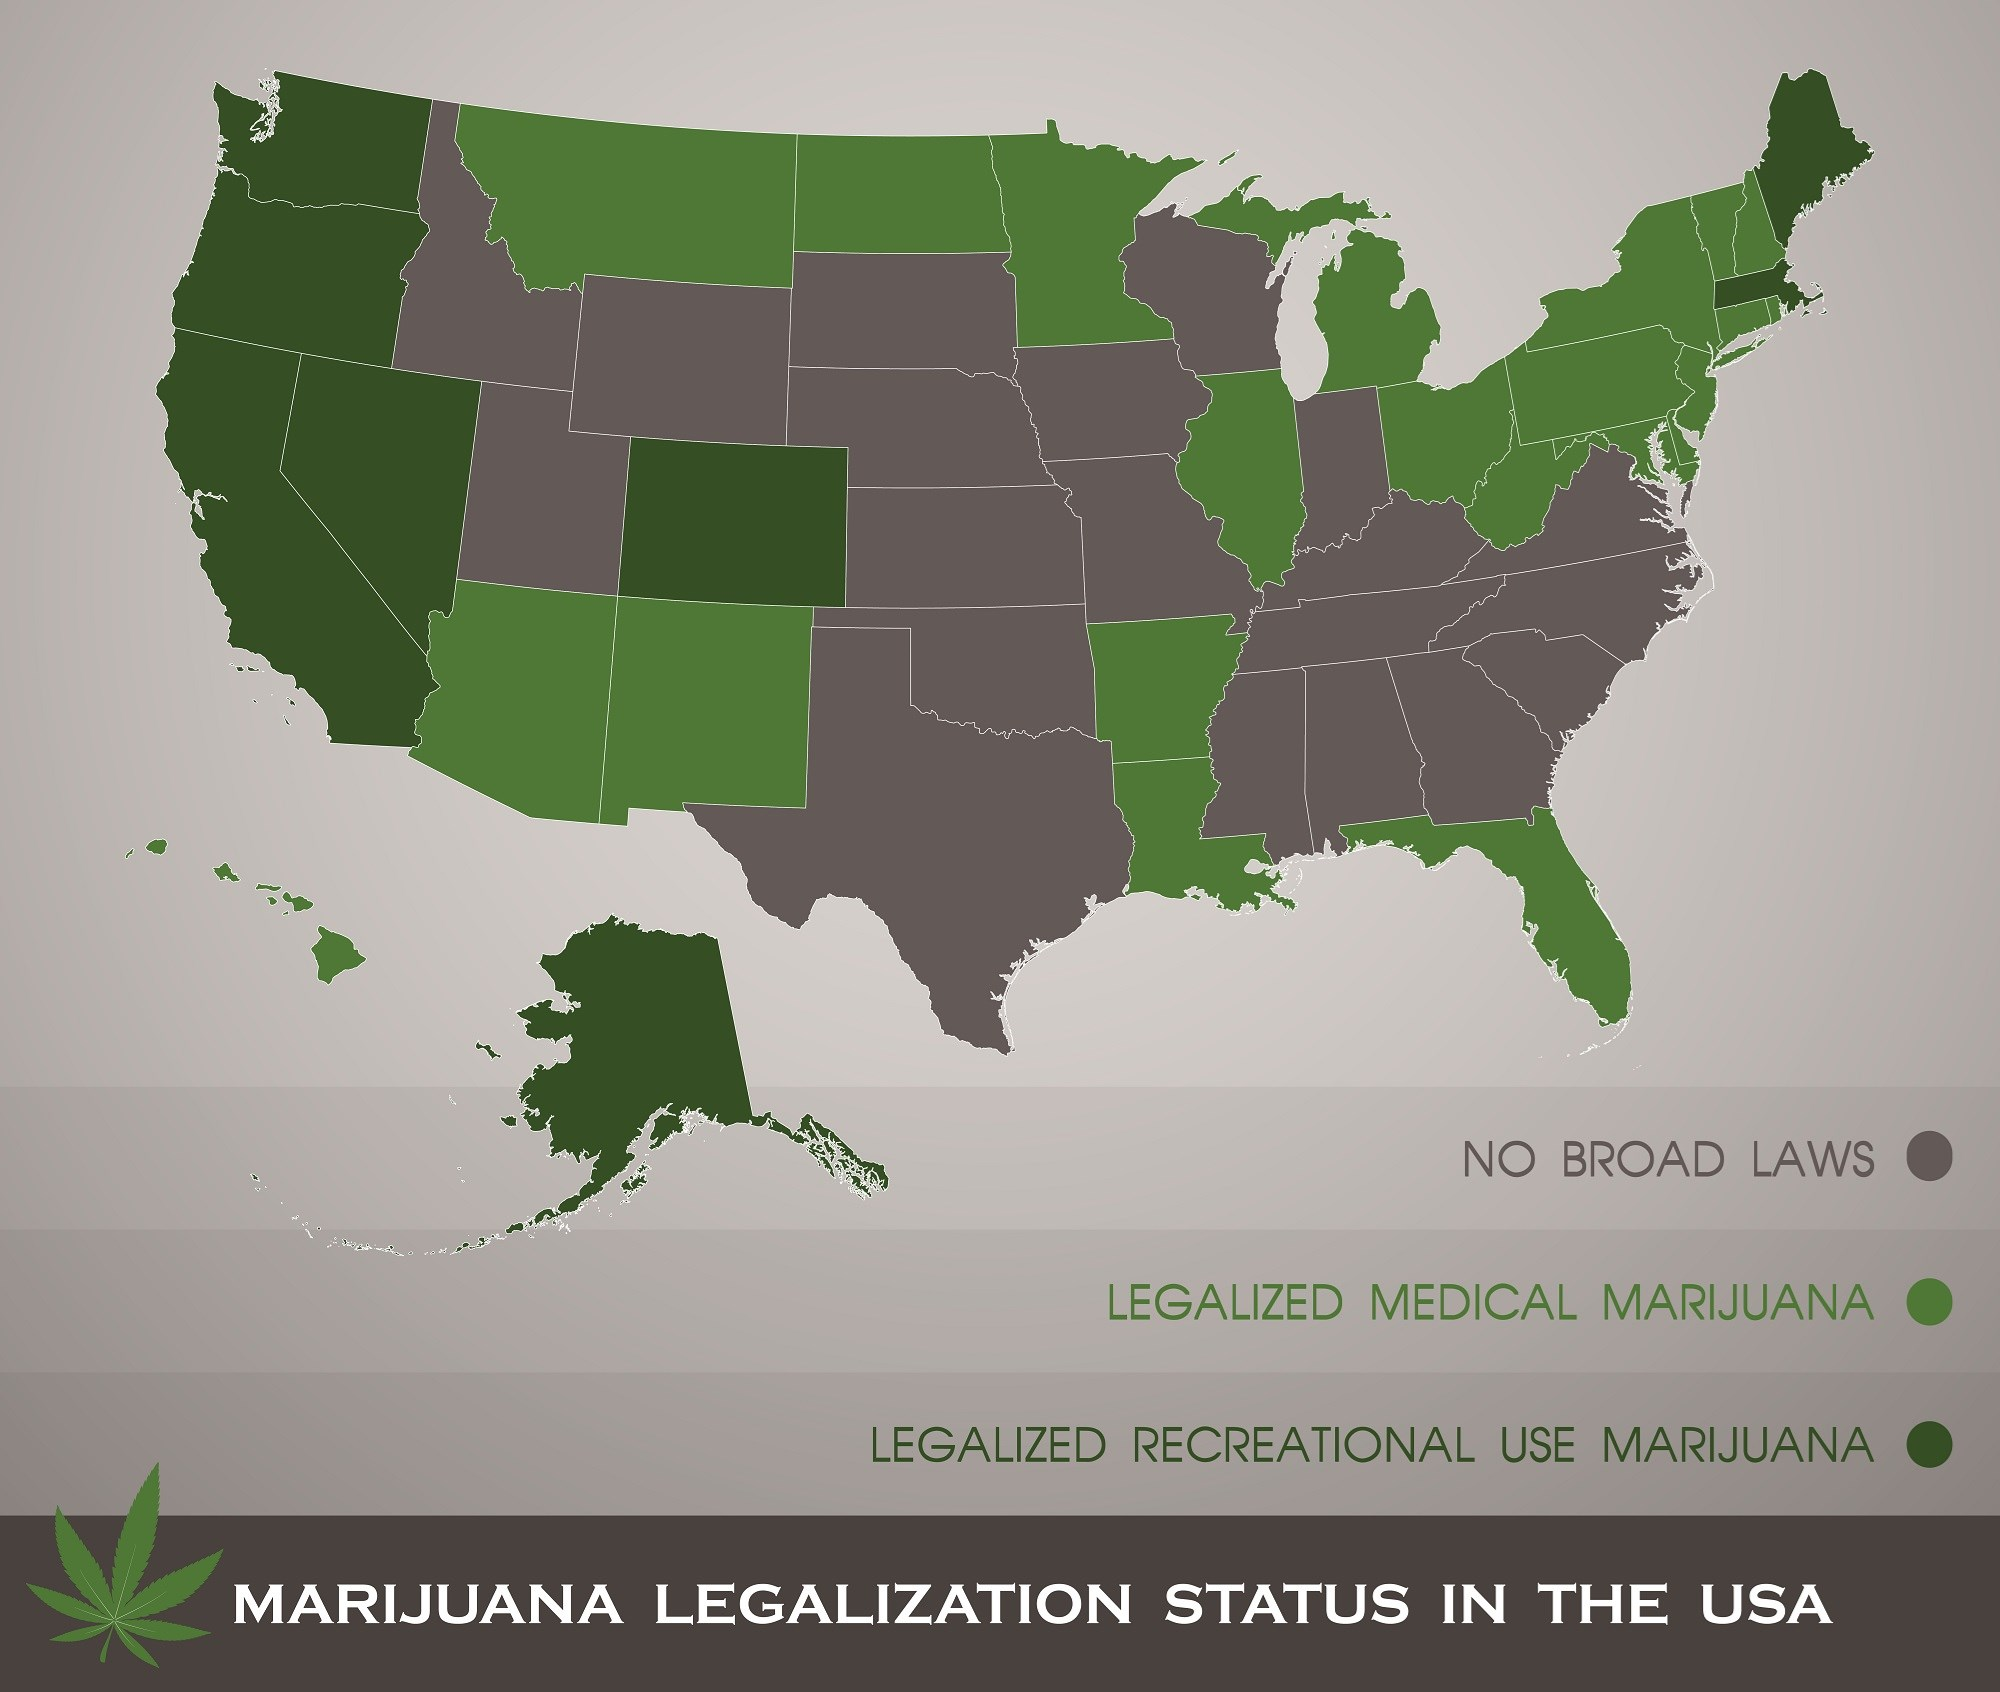 Medical Cannabis Legalization Associated With Reduced Schedule III Opioid Prescriptions